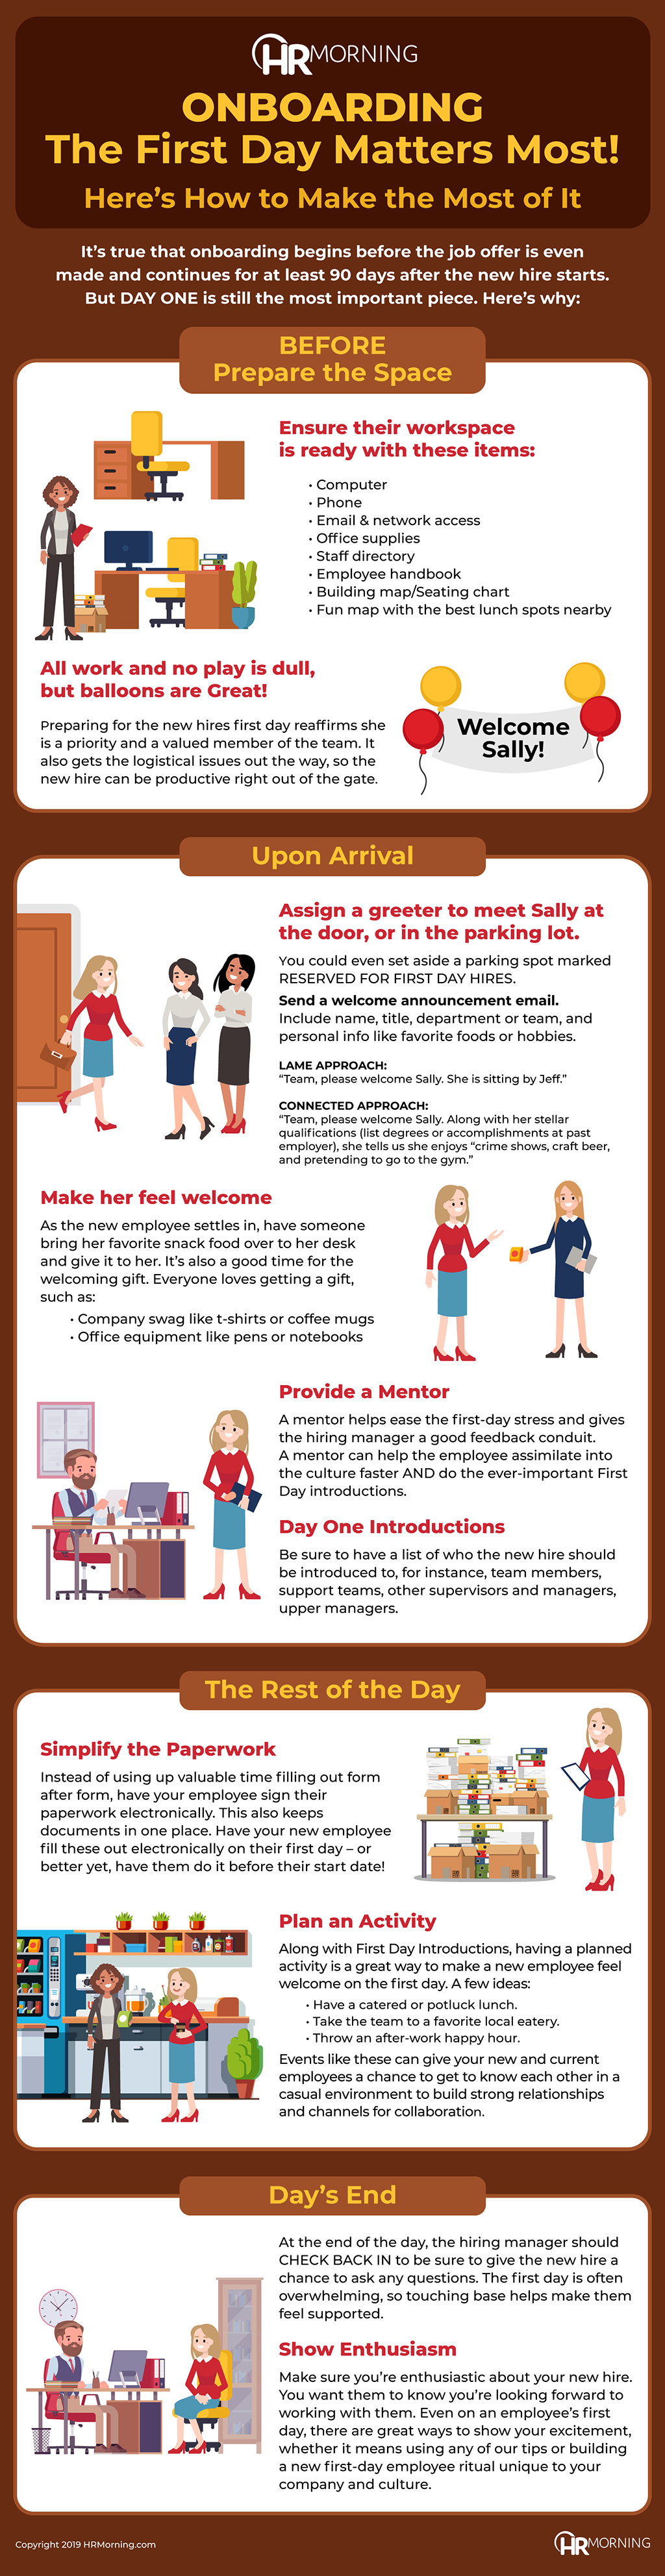 Onboarding: The First Day Matters Most! – Infographic